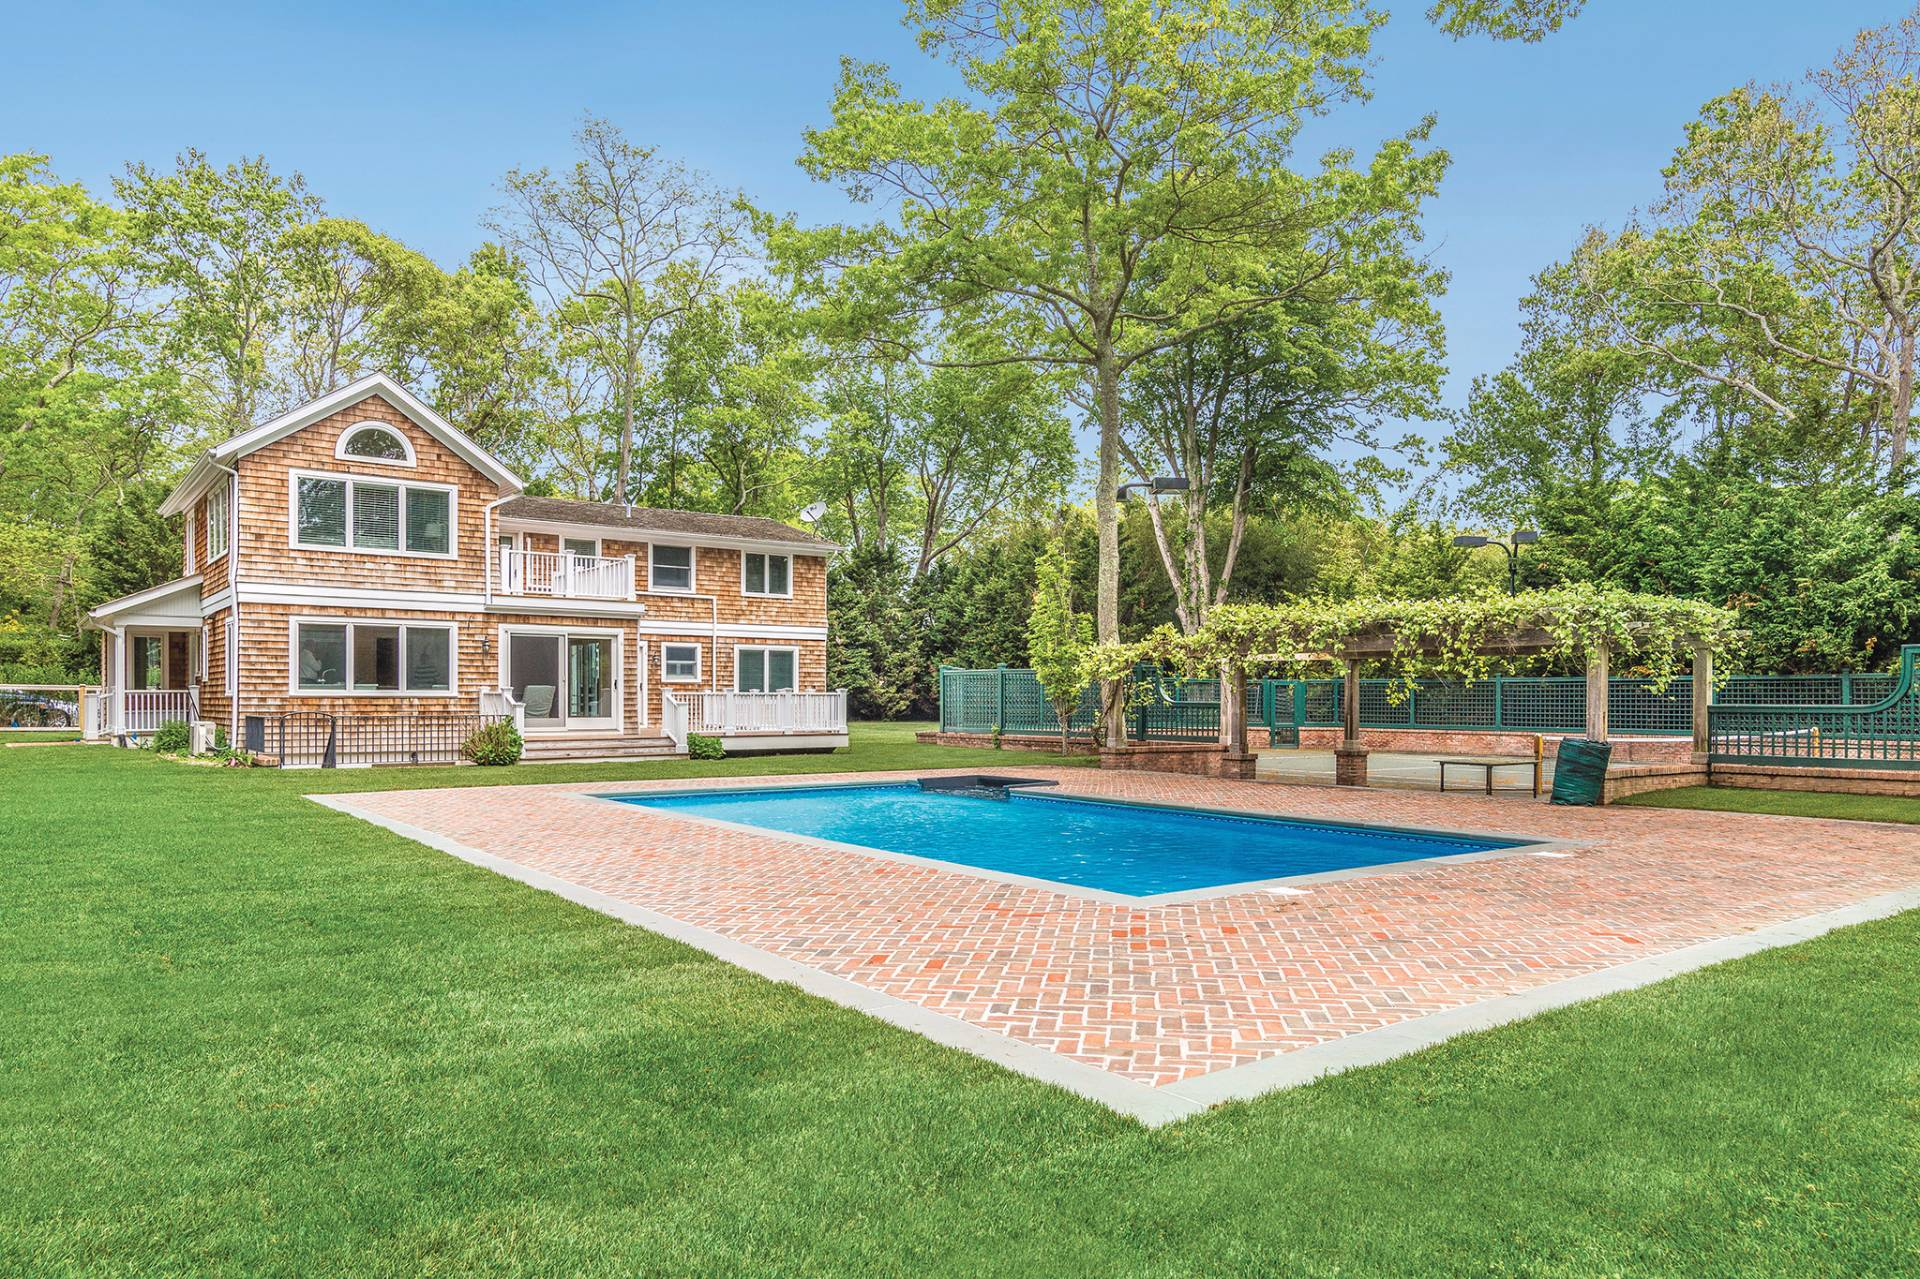 Single Family Home for Sale at A Bridgehampton Traditional With Pool And Tennis 2221 Scuttlehole Road, Bridgehampton, New York